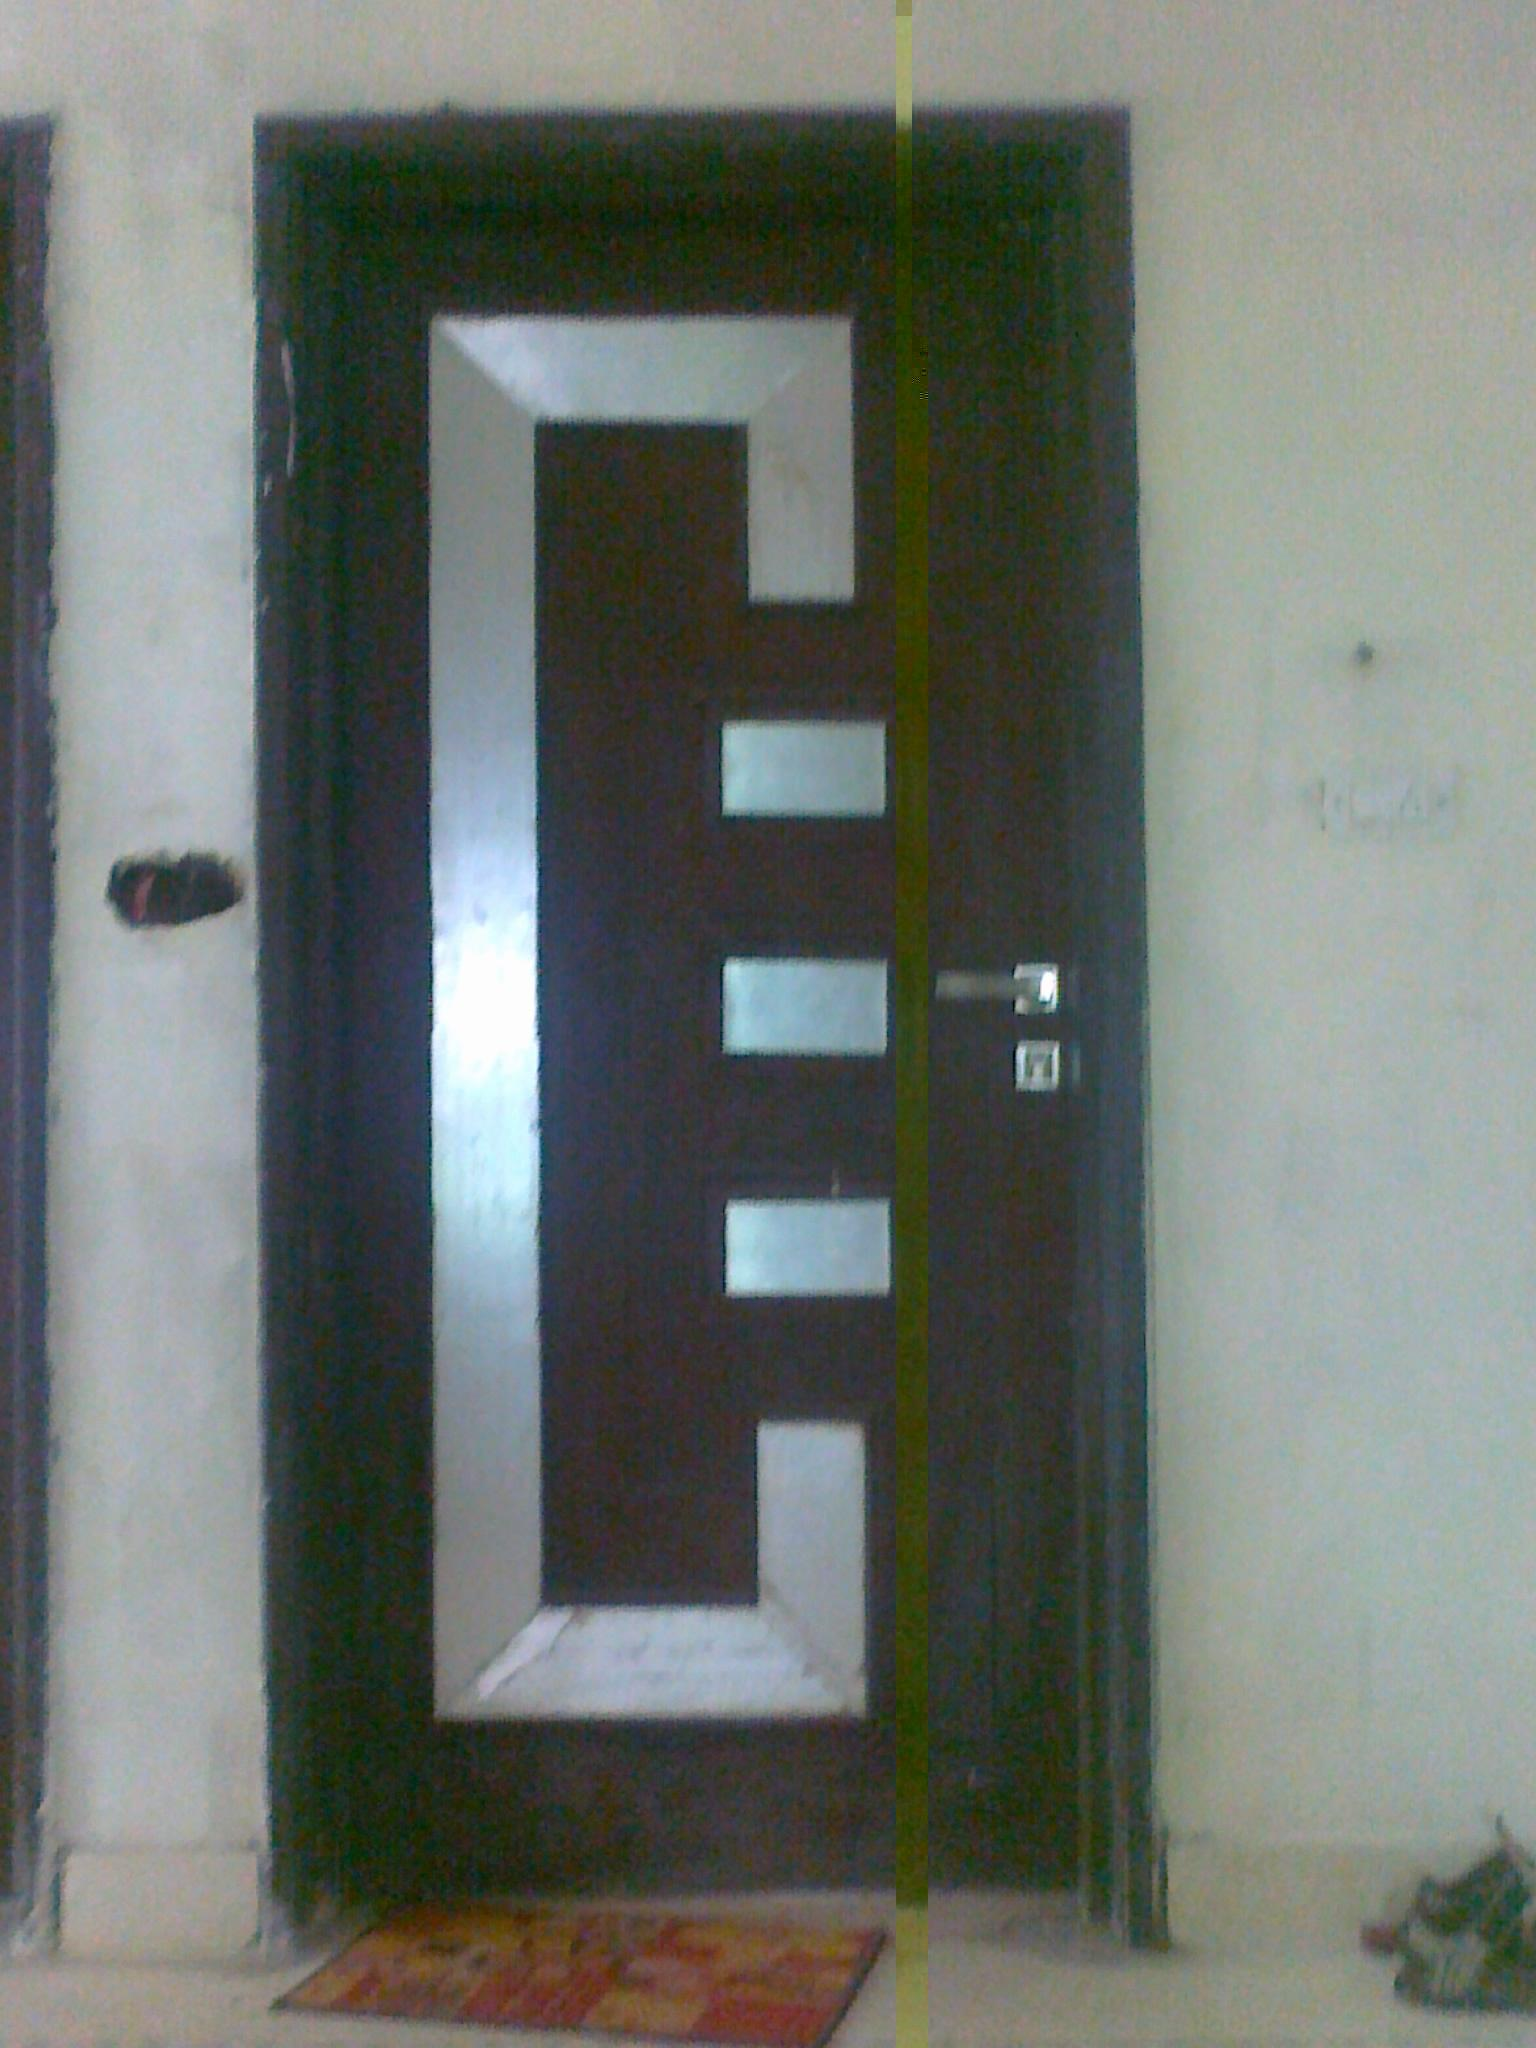 Door design gharexpert for Modern single door designs for houses